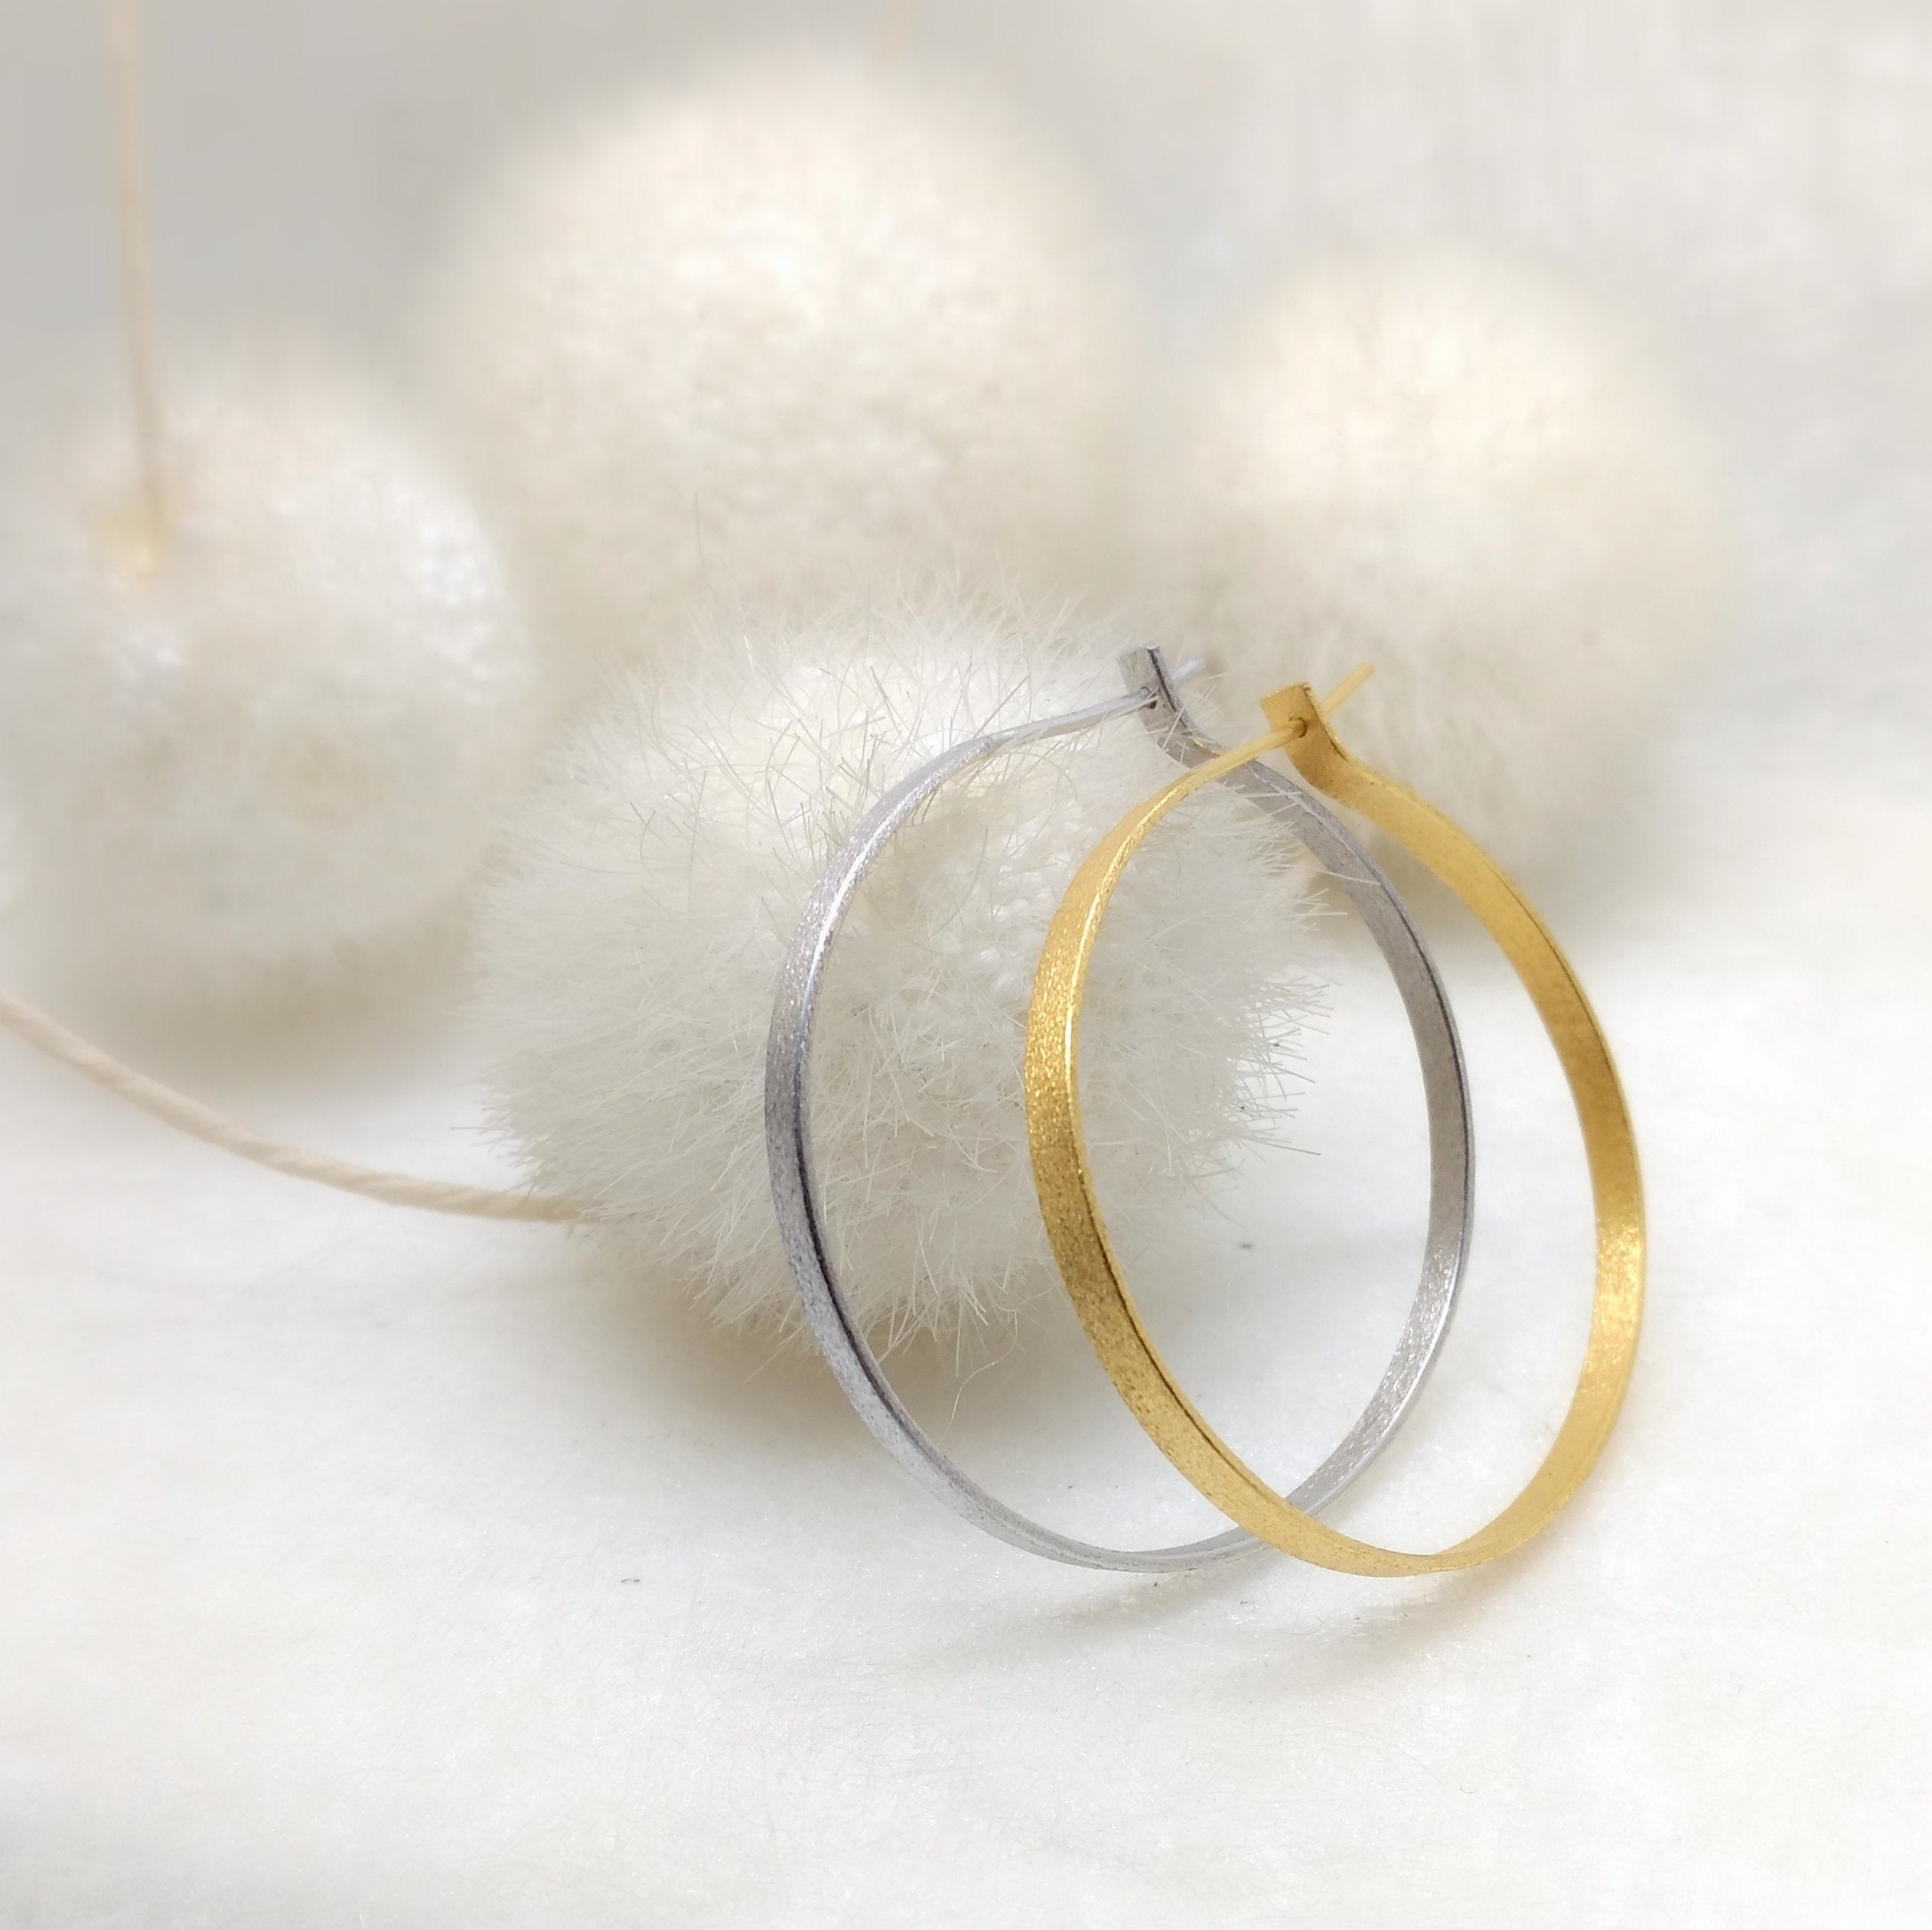 ImNos - big (ø 40mm) Sterling silver hoops in gold or rhodium plated